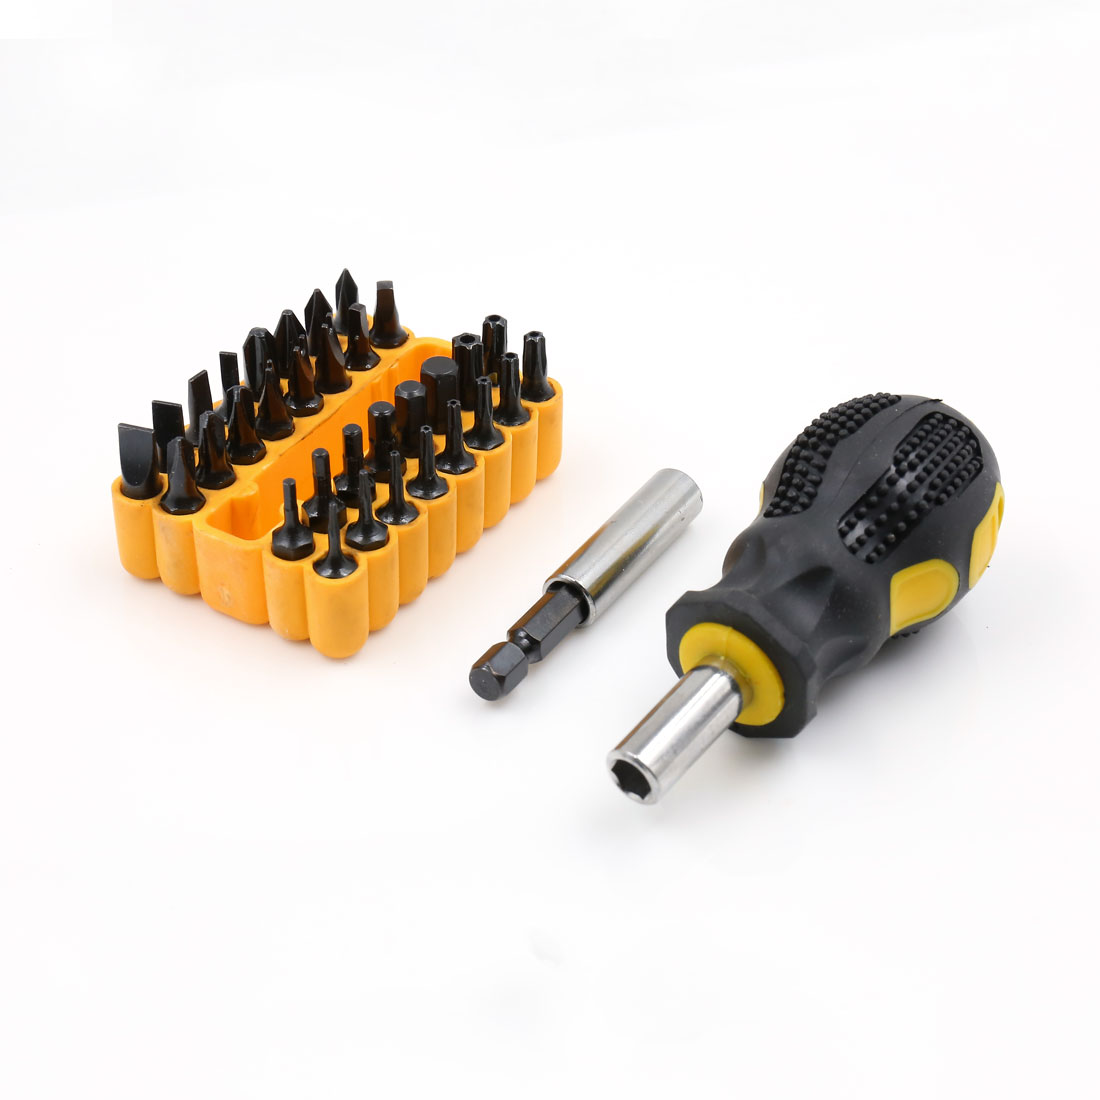 Plastic Nonslip Handle Hex Torx Slotted Phillips Screwdrivers Bits Set 34 in 1